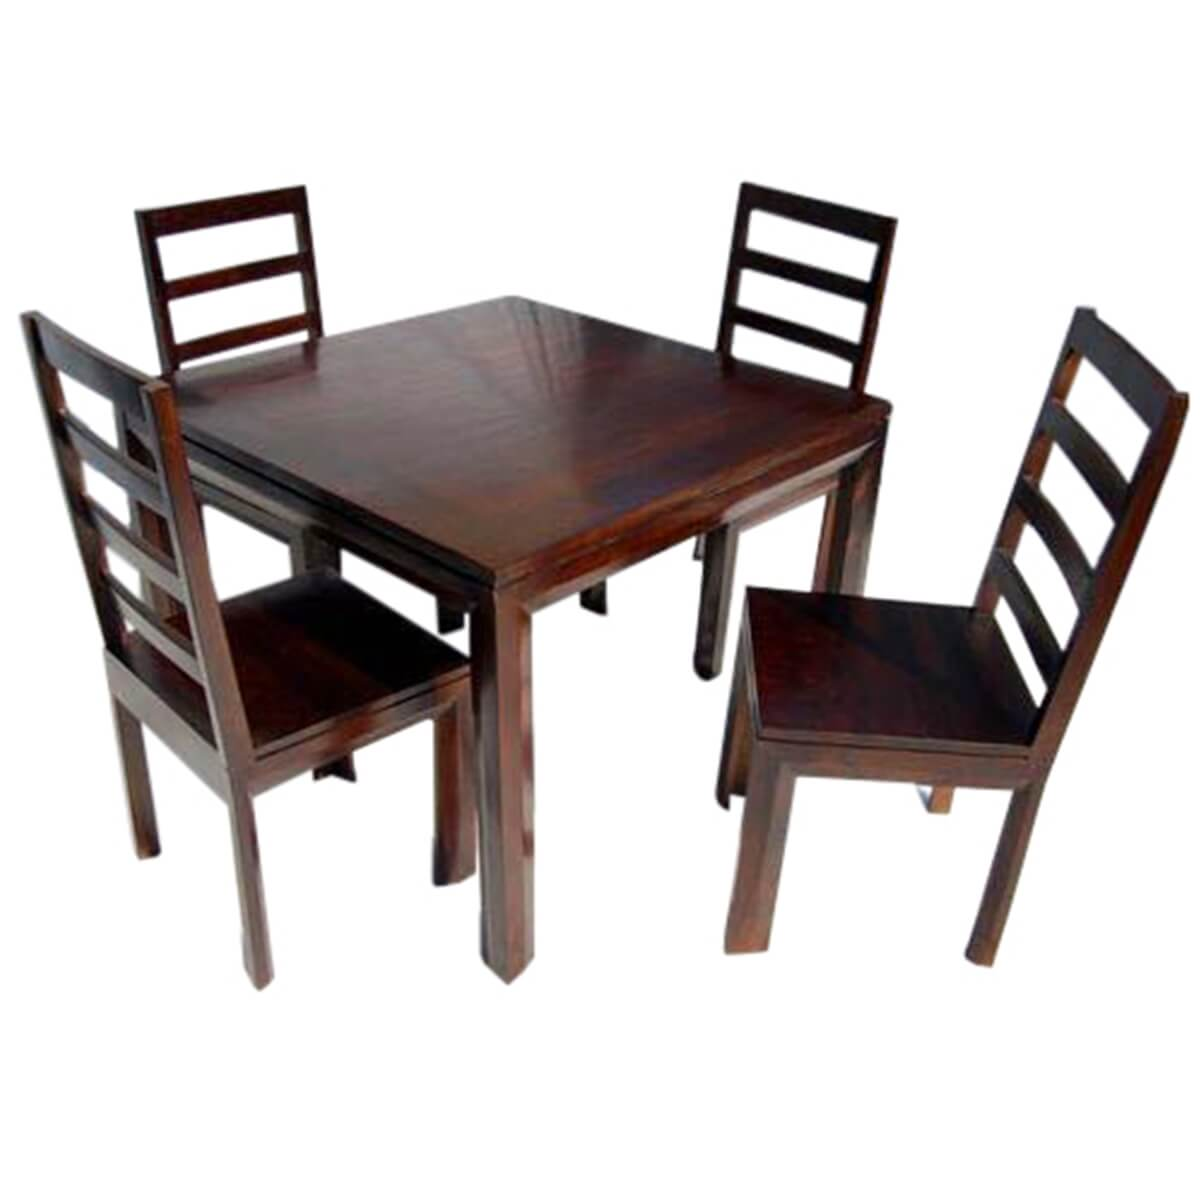 Oak Wood Table And Chairs: Solid Wood Transitional Dining Table And Chairs Set